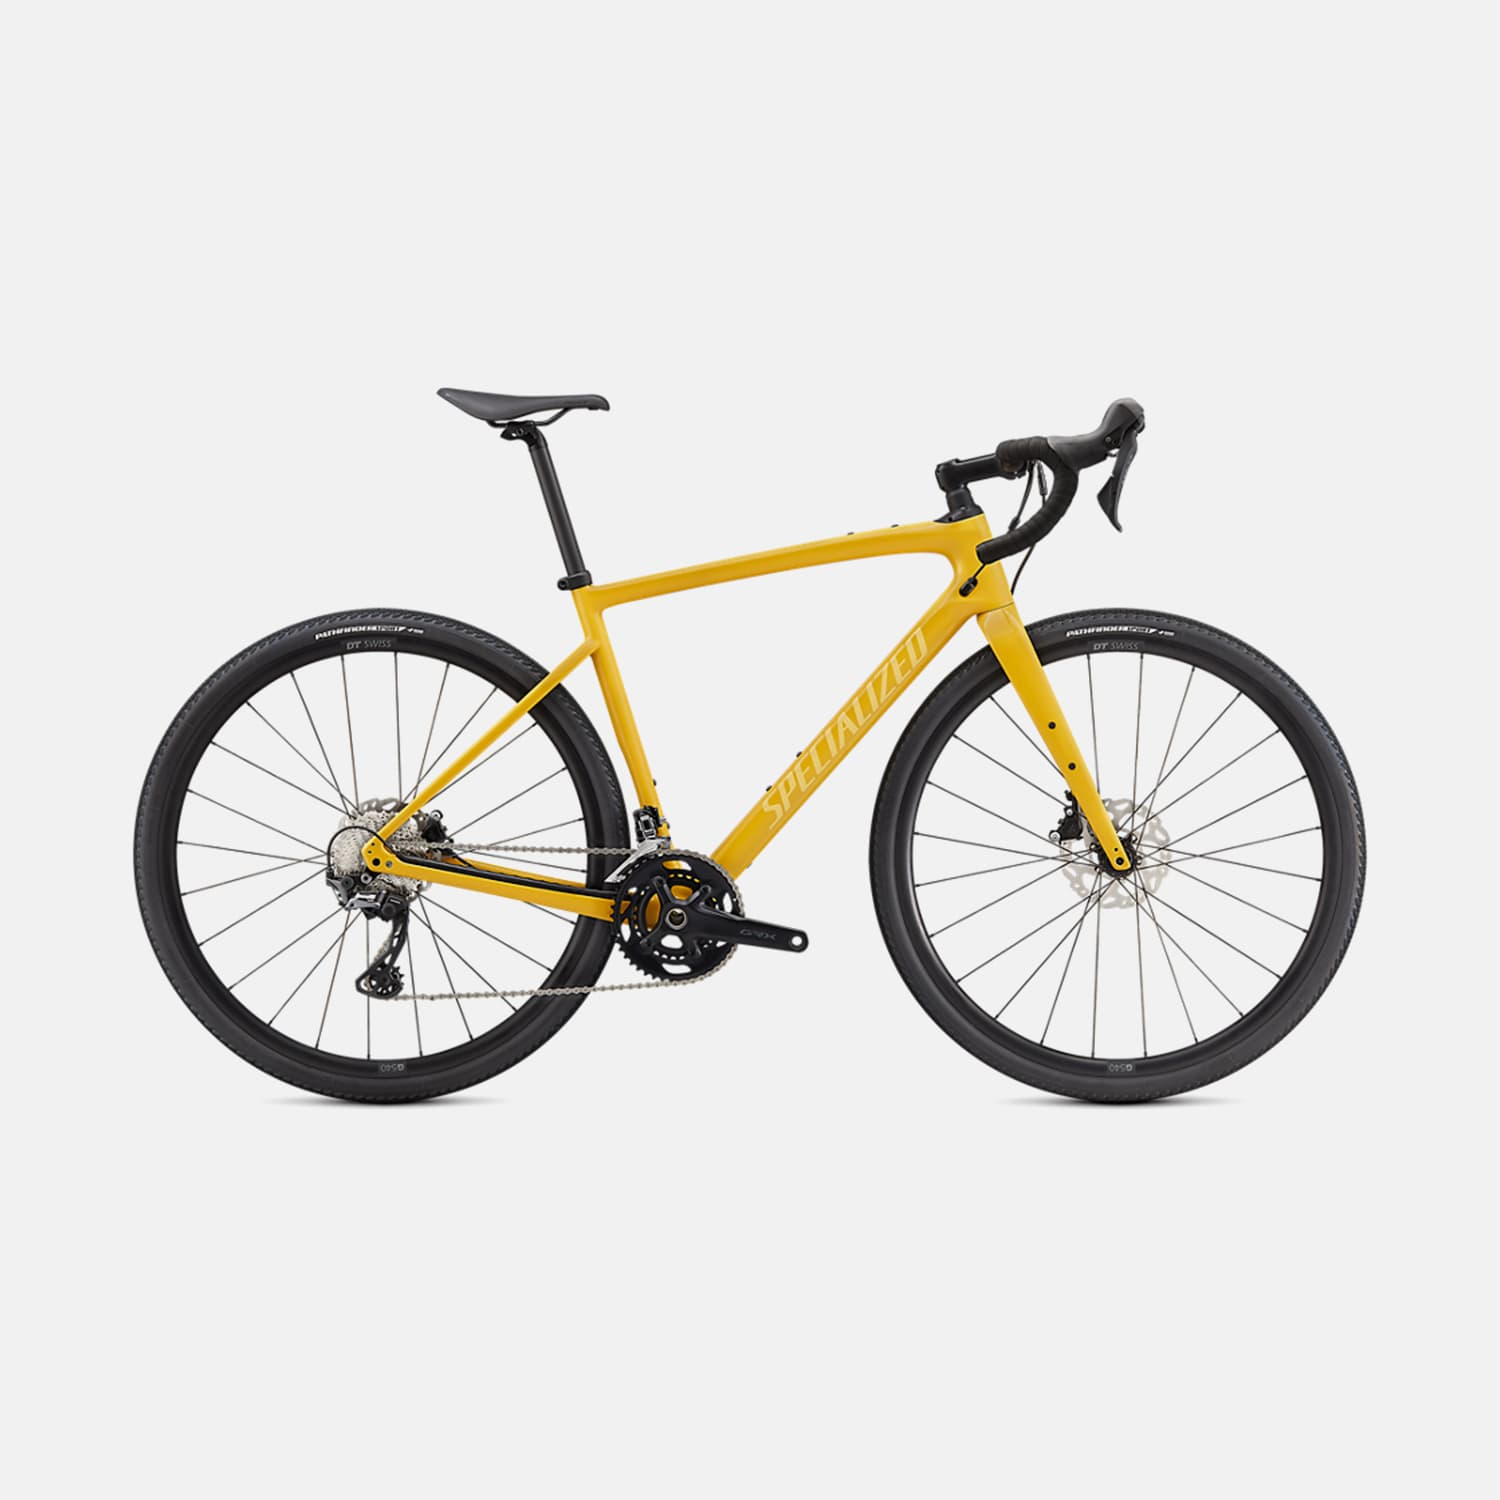 outville-gravelbike-special-01a